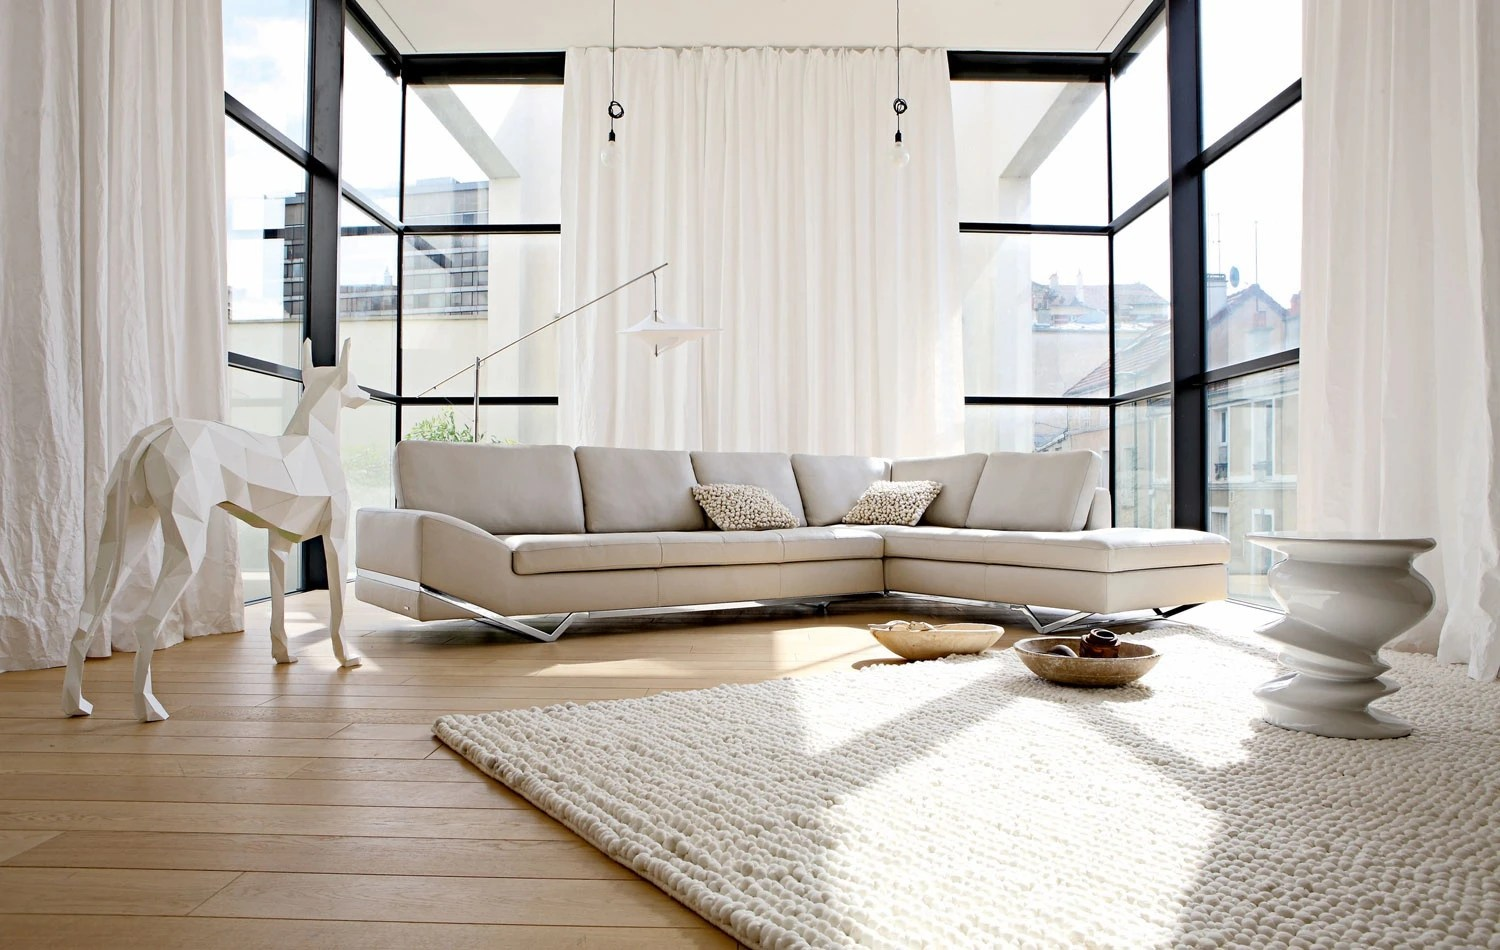 Roche Bobois Outlet The Sofa Is Modular Intervalle Roche Bobois Luxury